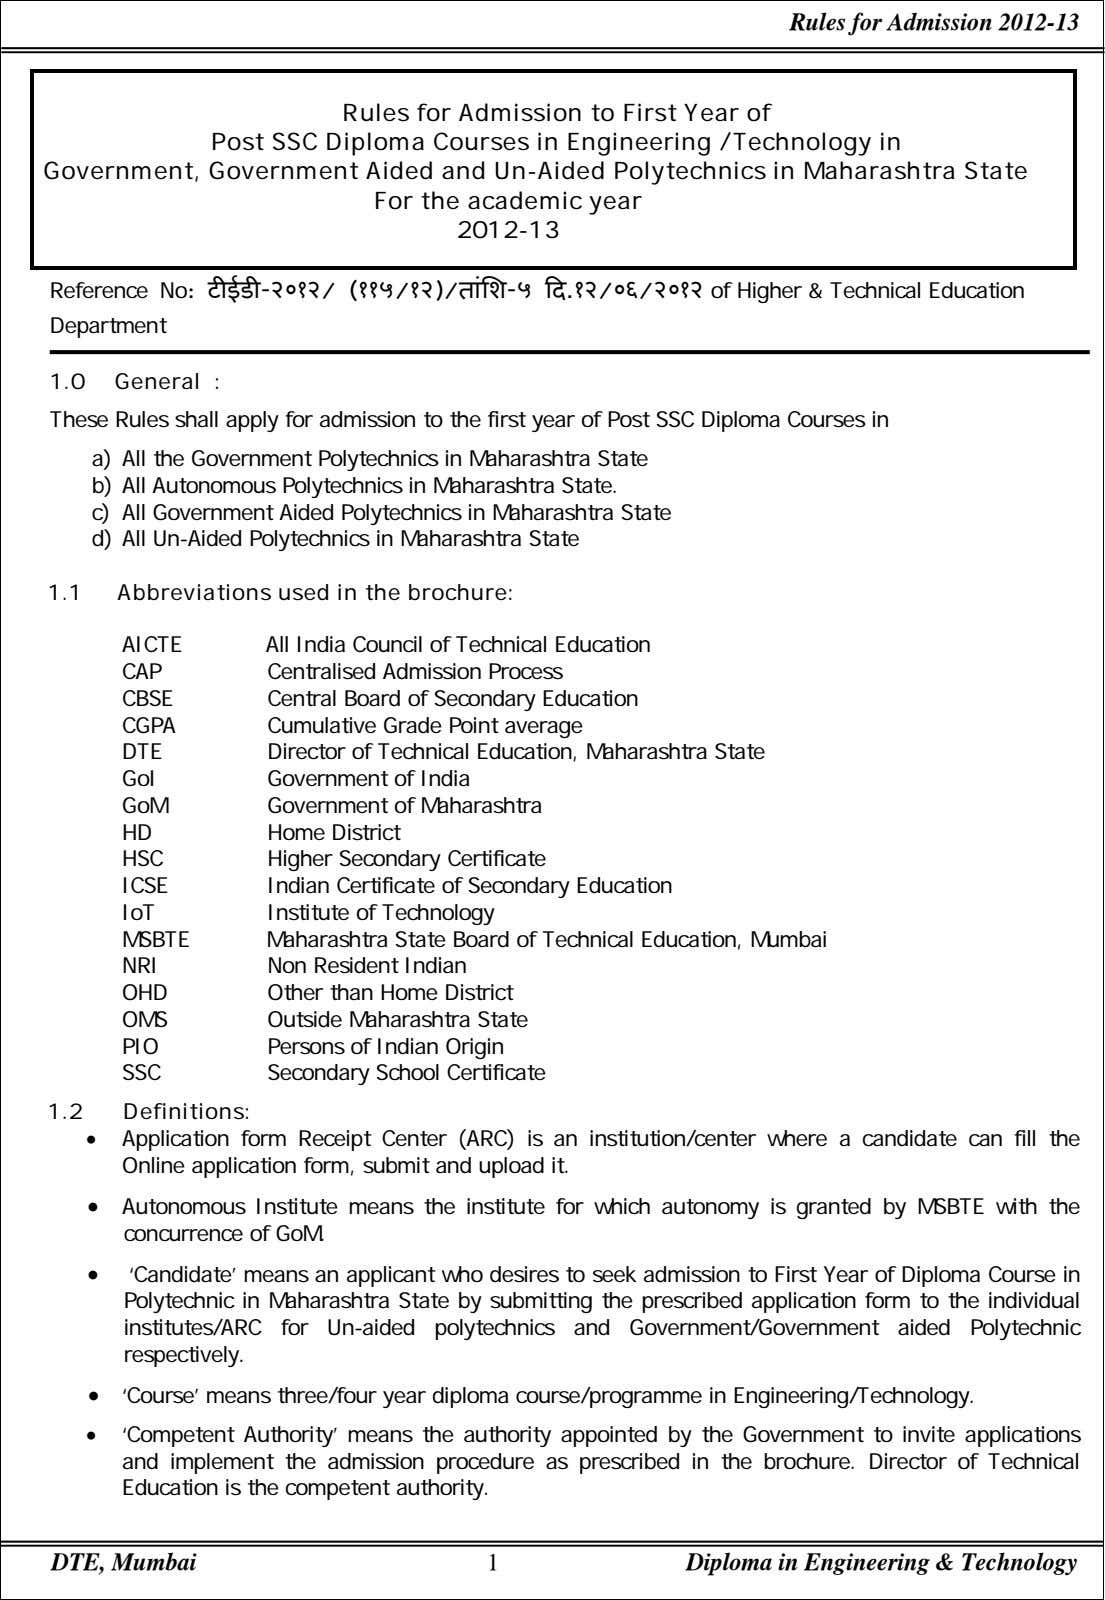 Rules for Admission 2012-13 Rules for Admission to First Year of Post SSC Diploma Courses